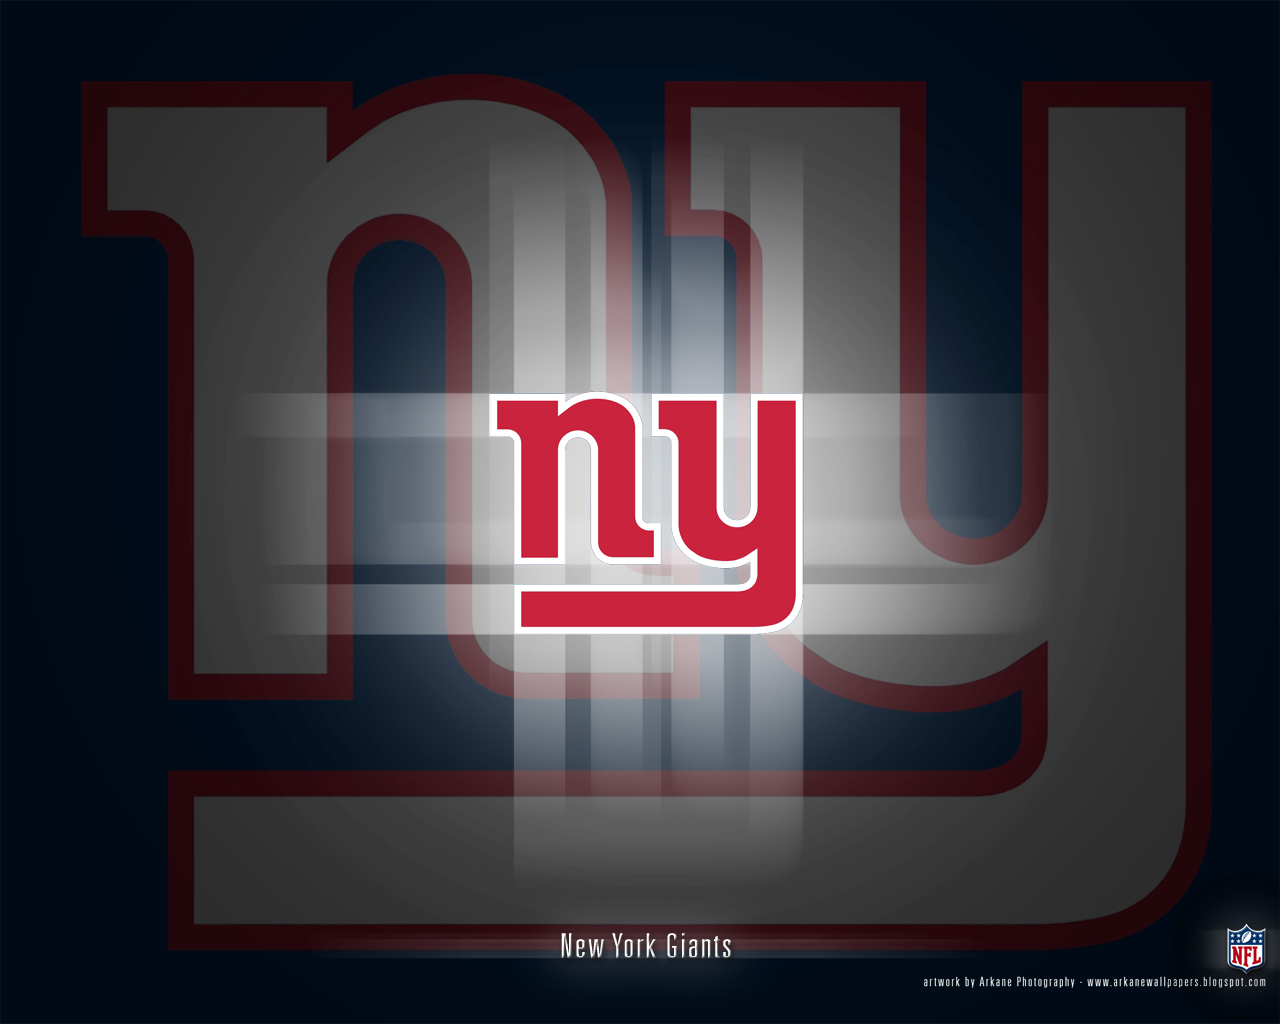 Arkane Nfl Wallpapers New York Giants Vol 1